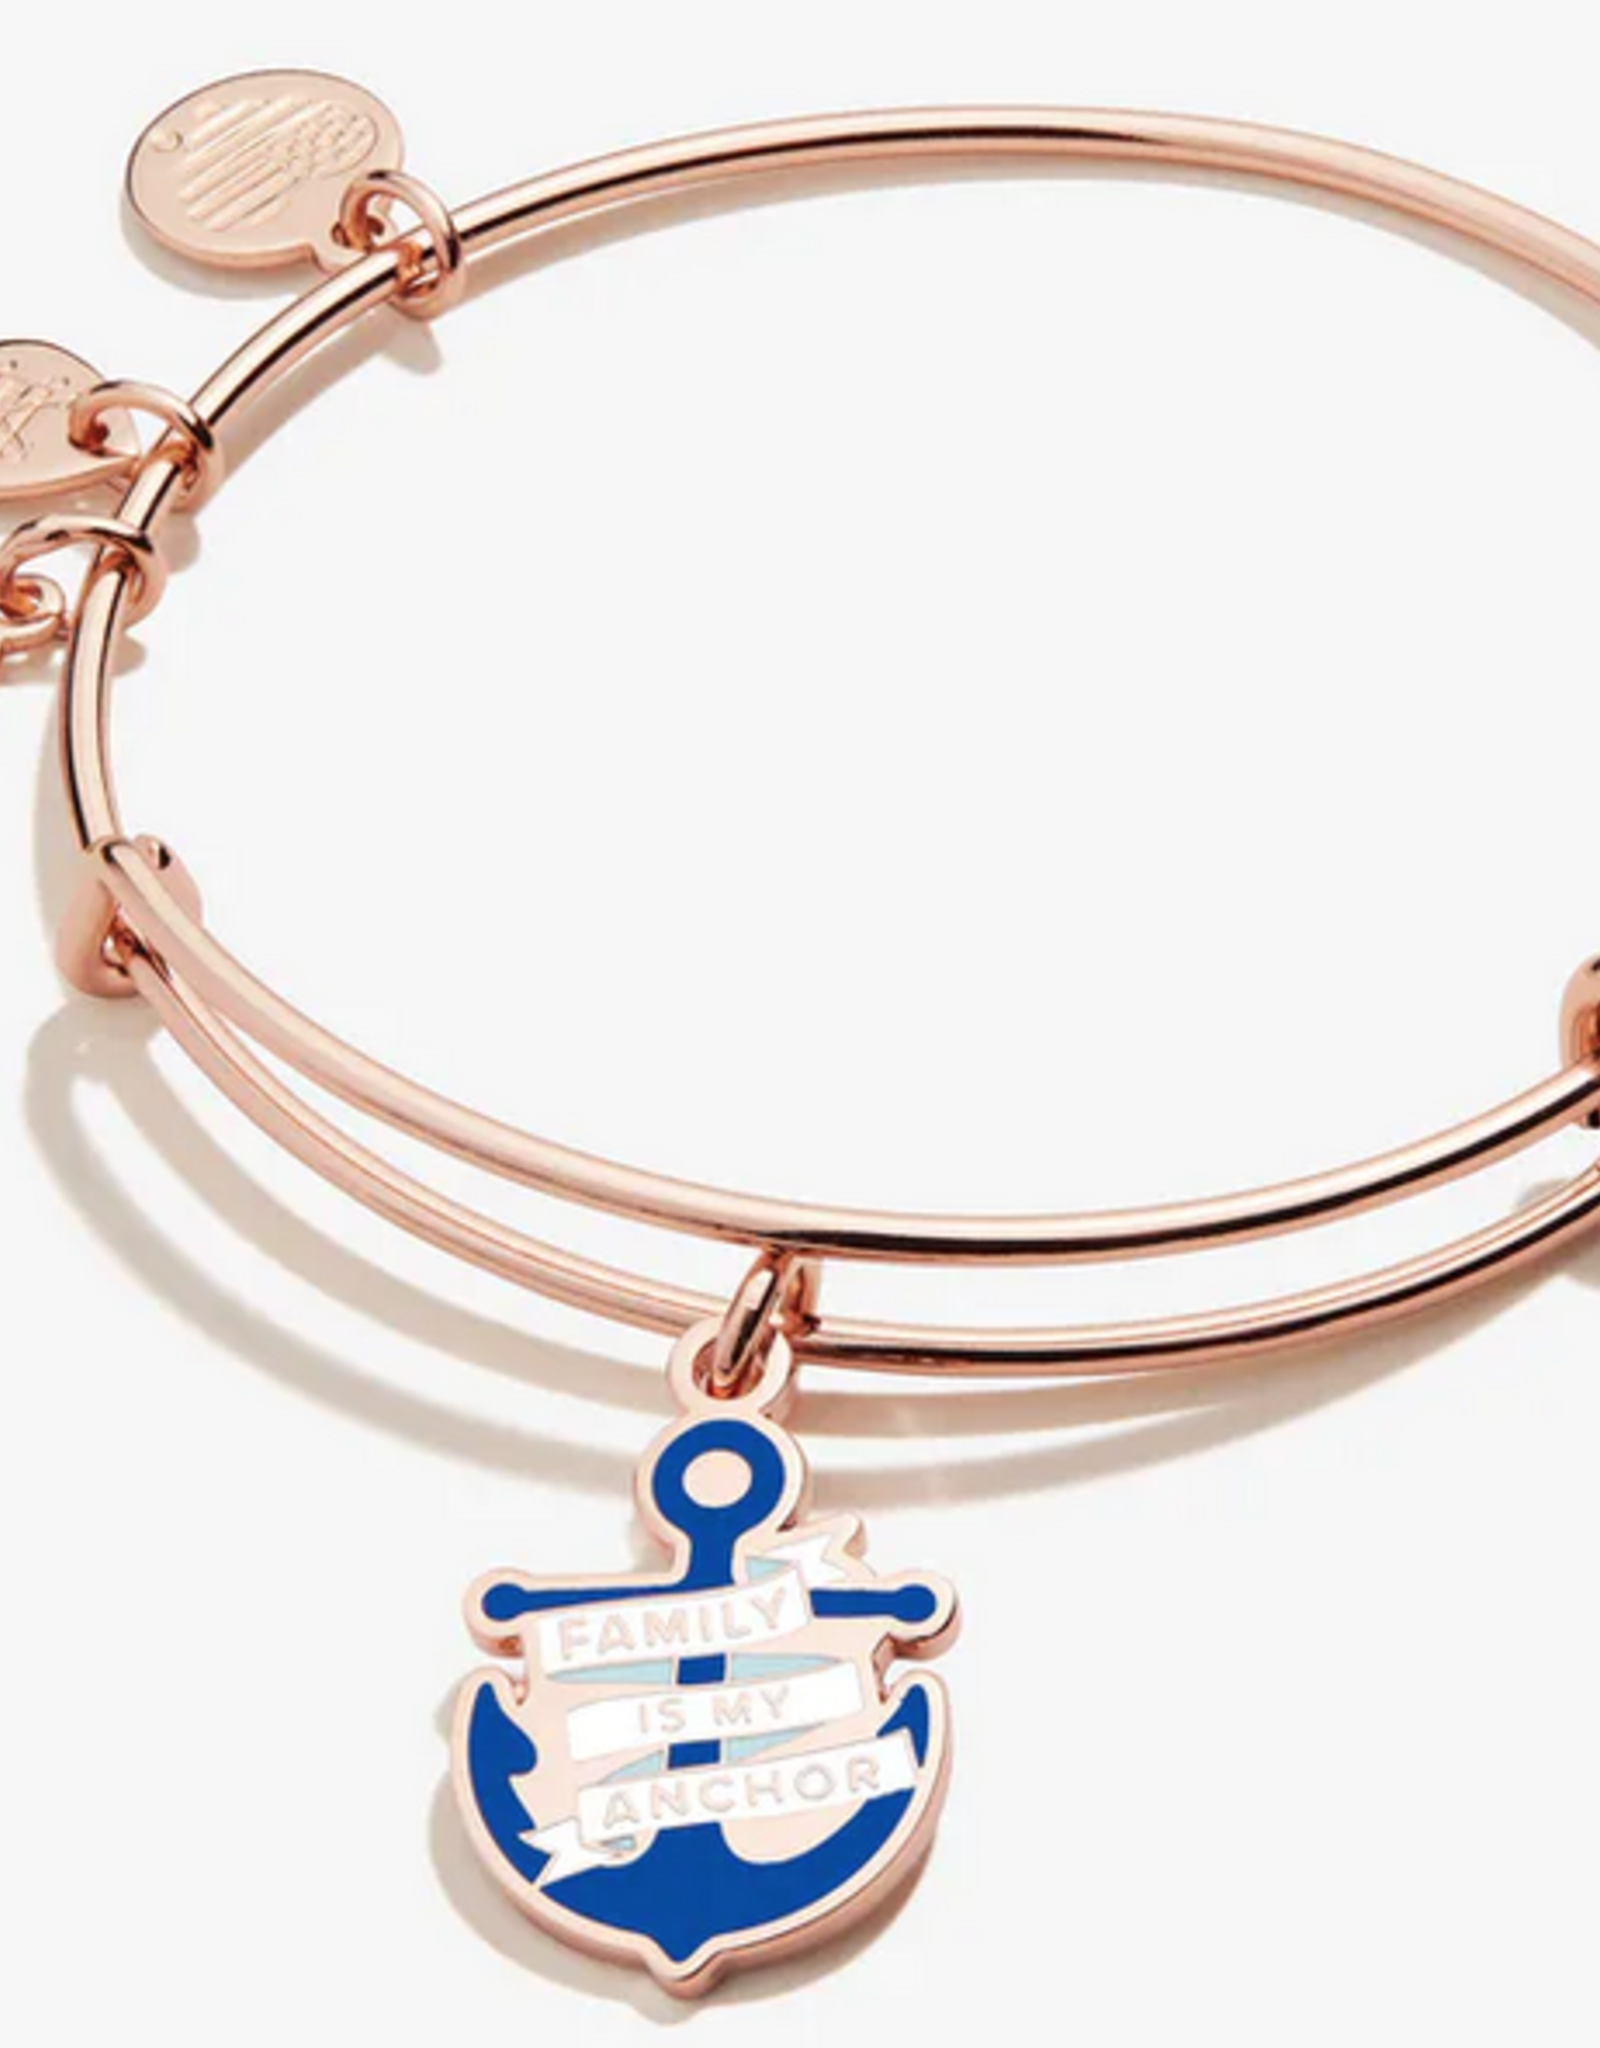 Alex and Ani Alex and Ani, Family is my Anchor, Shiny Rose Gold